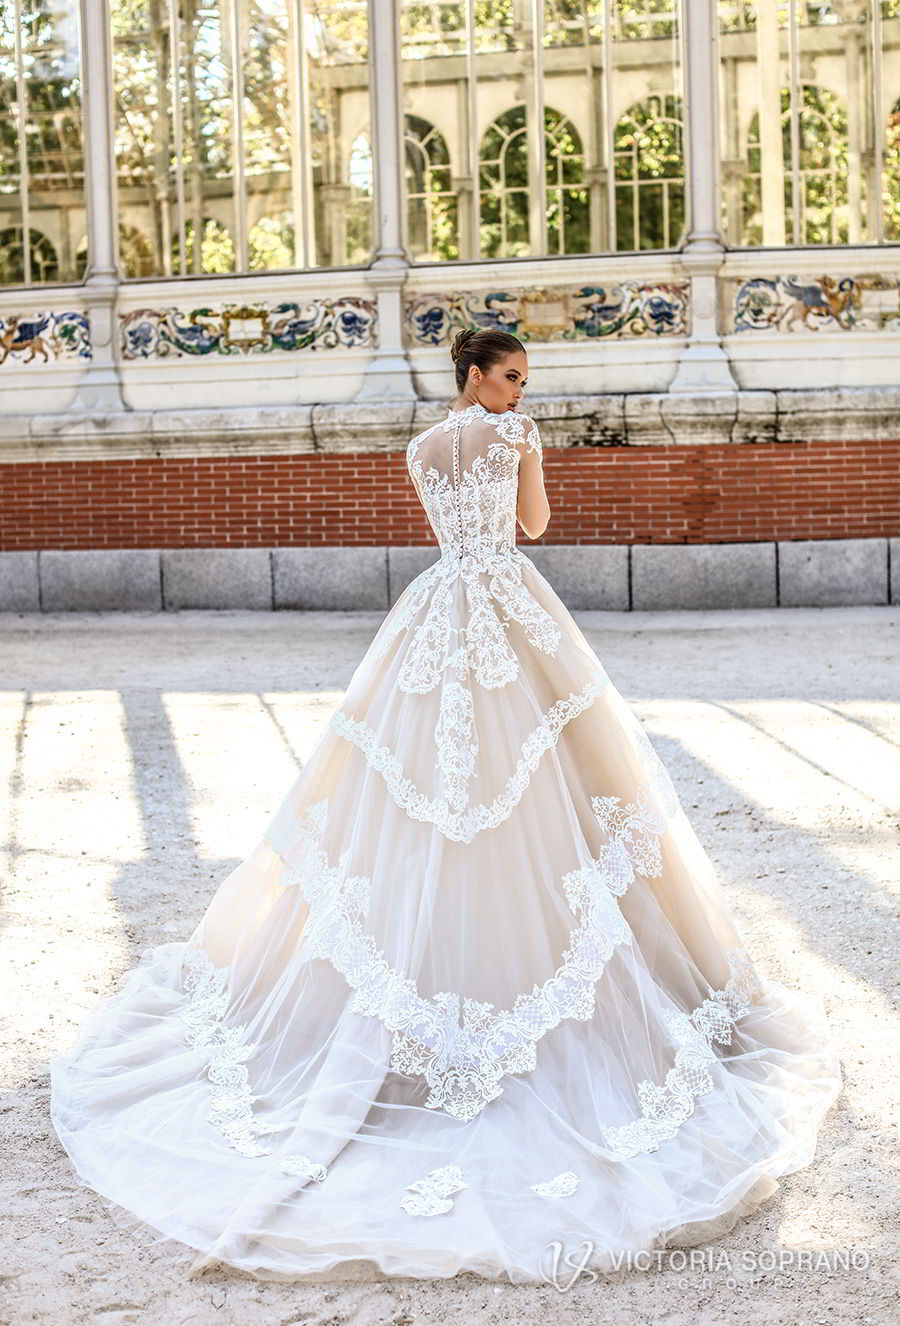 victoria soprano 2018 bridal long sleeves illusion high neck sweetheart neckline heavily embellished bodice princess a line wedding dress sheer lace back chapel train (monique) bv